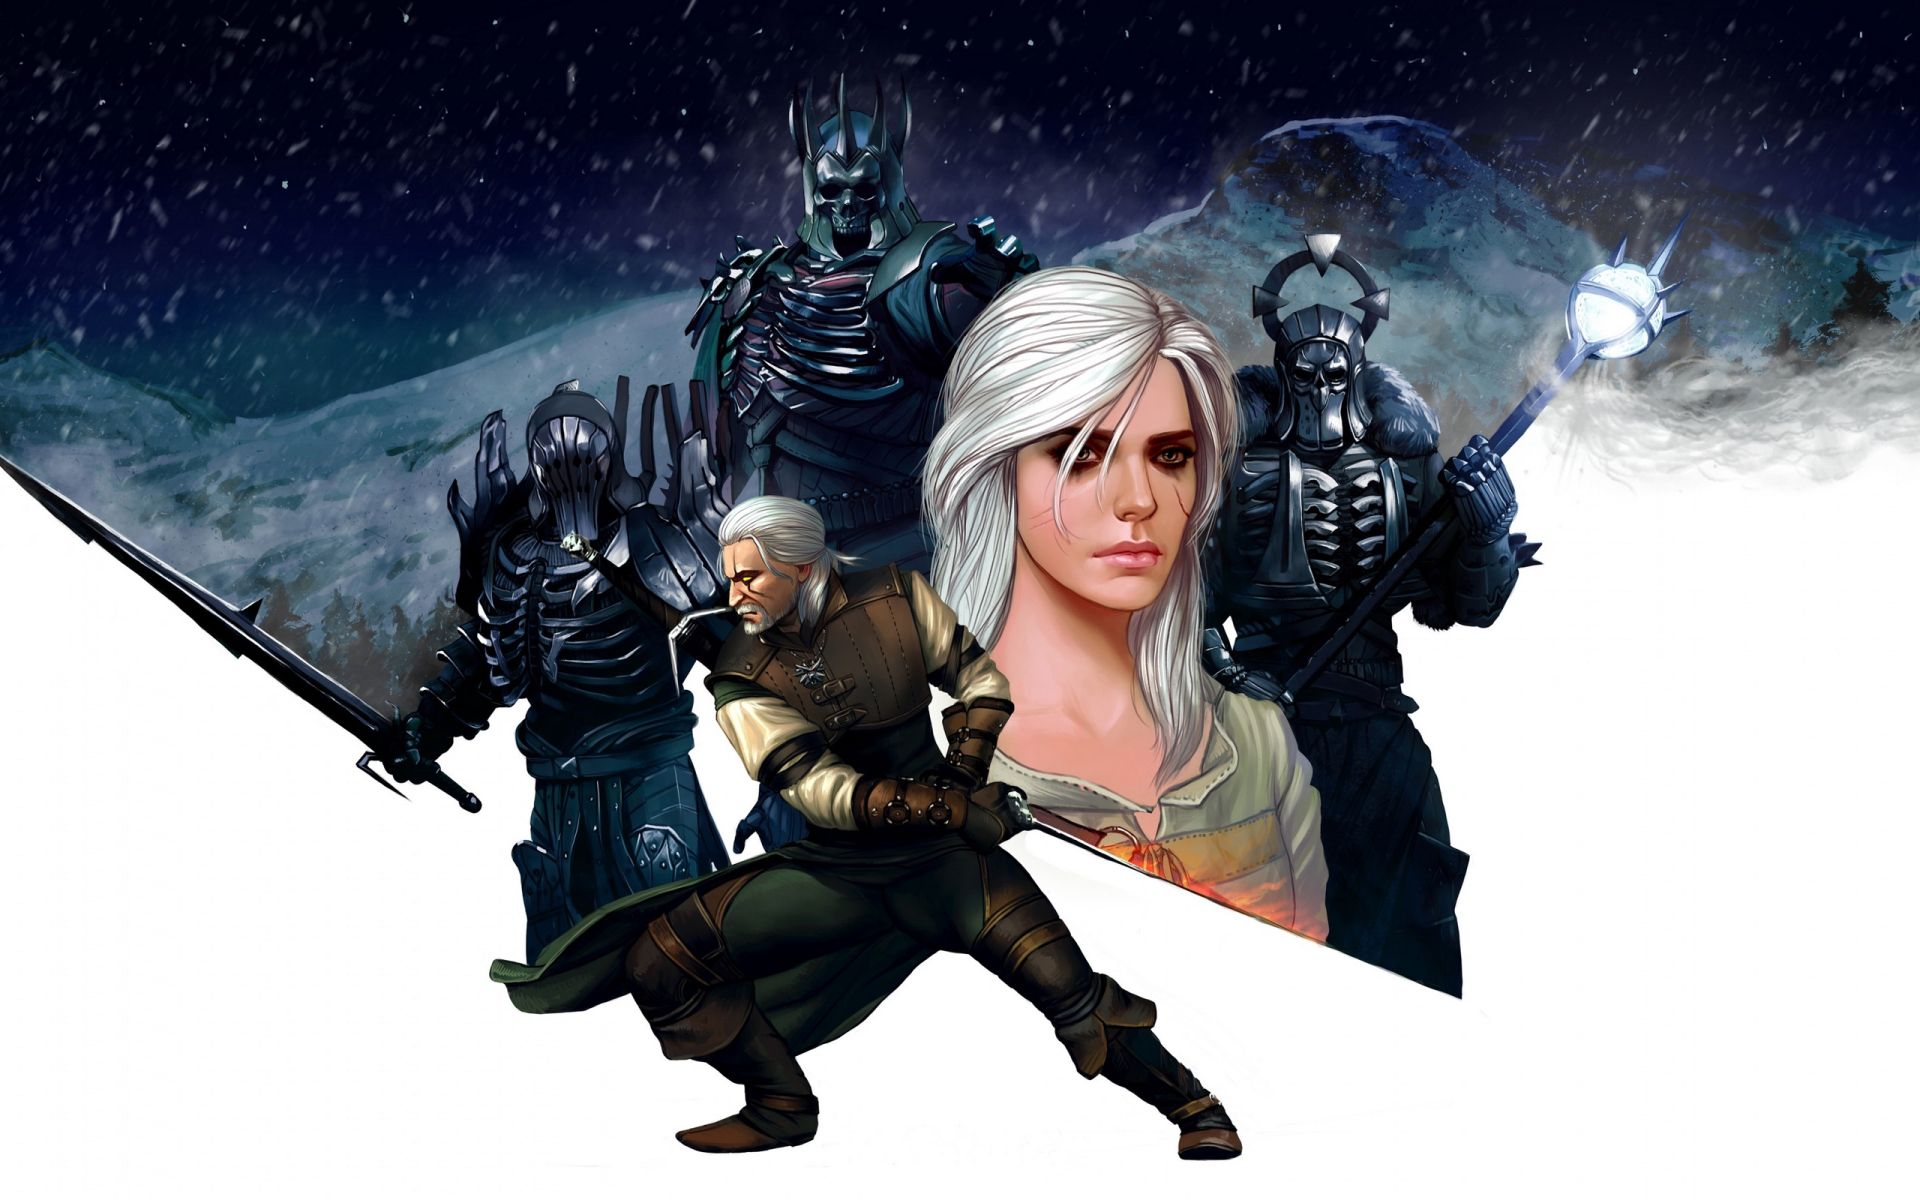 The Witcher, Cool HD Wallpaper